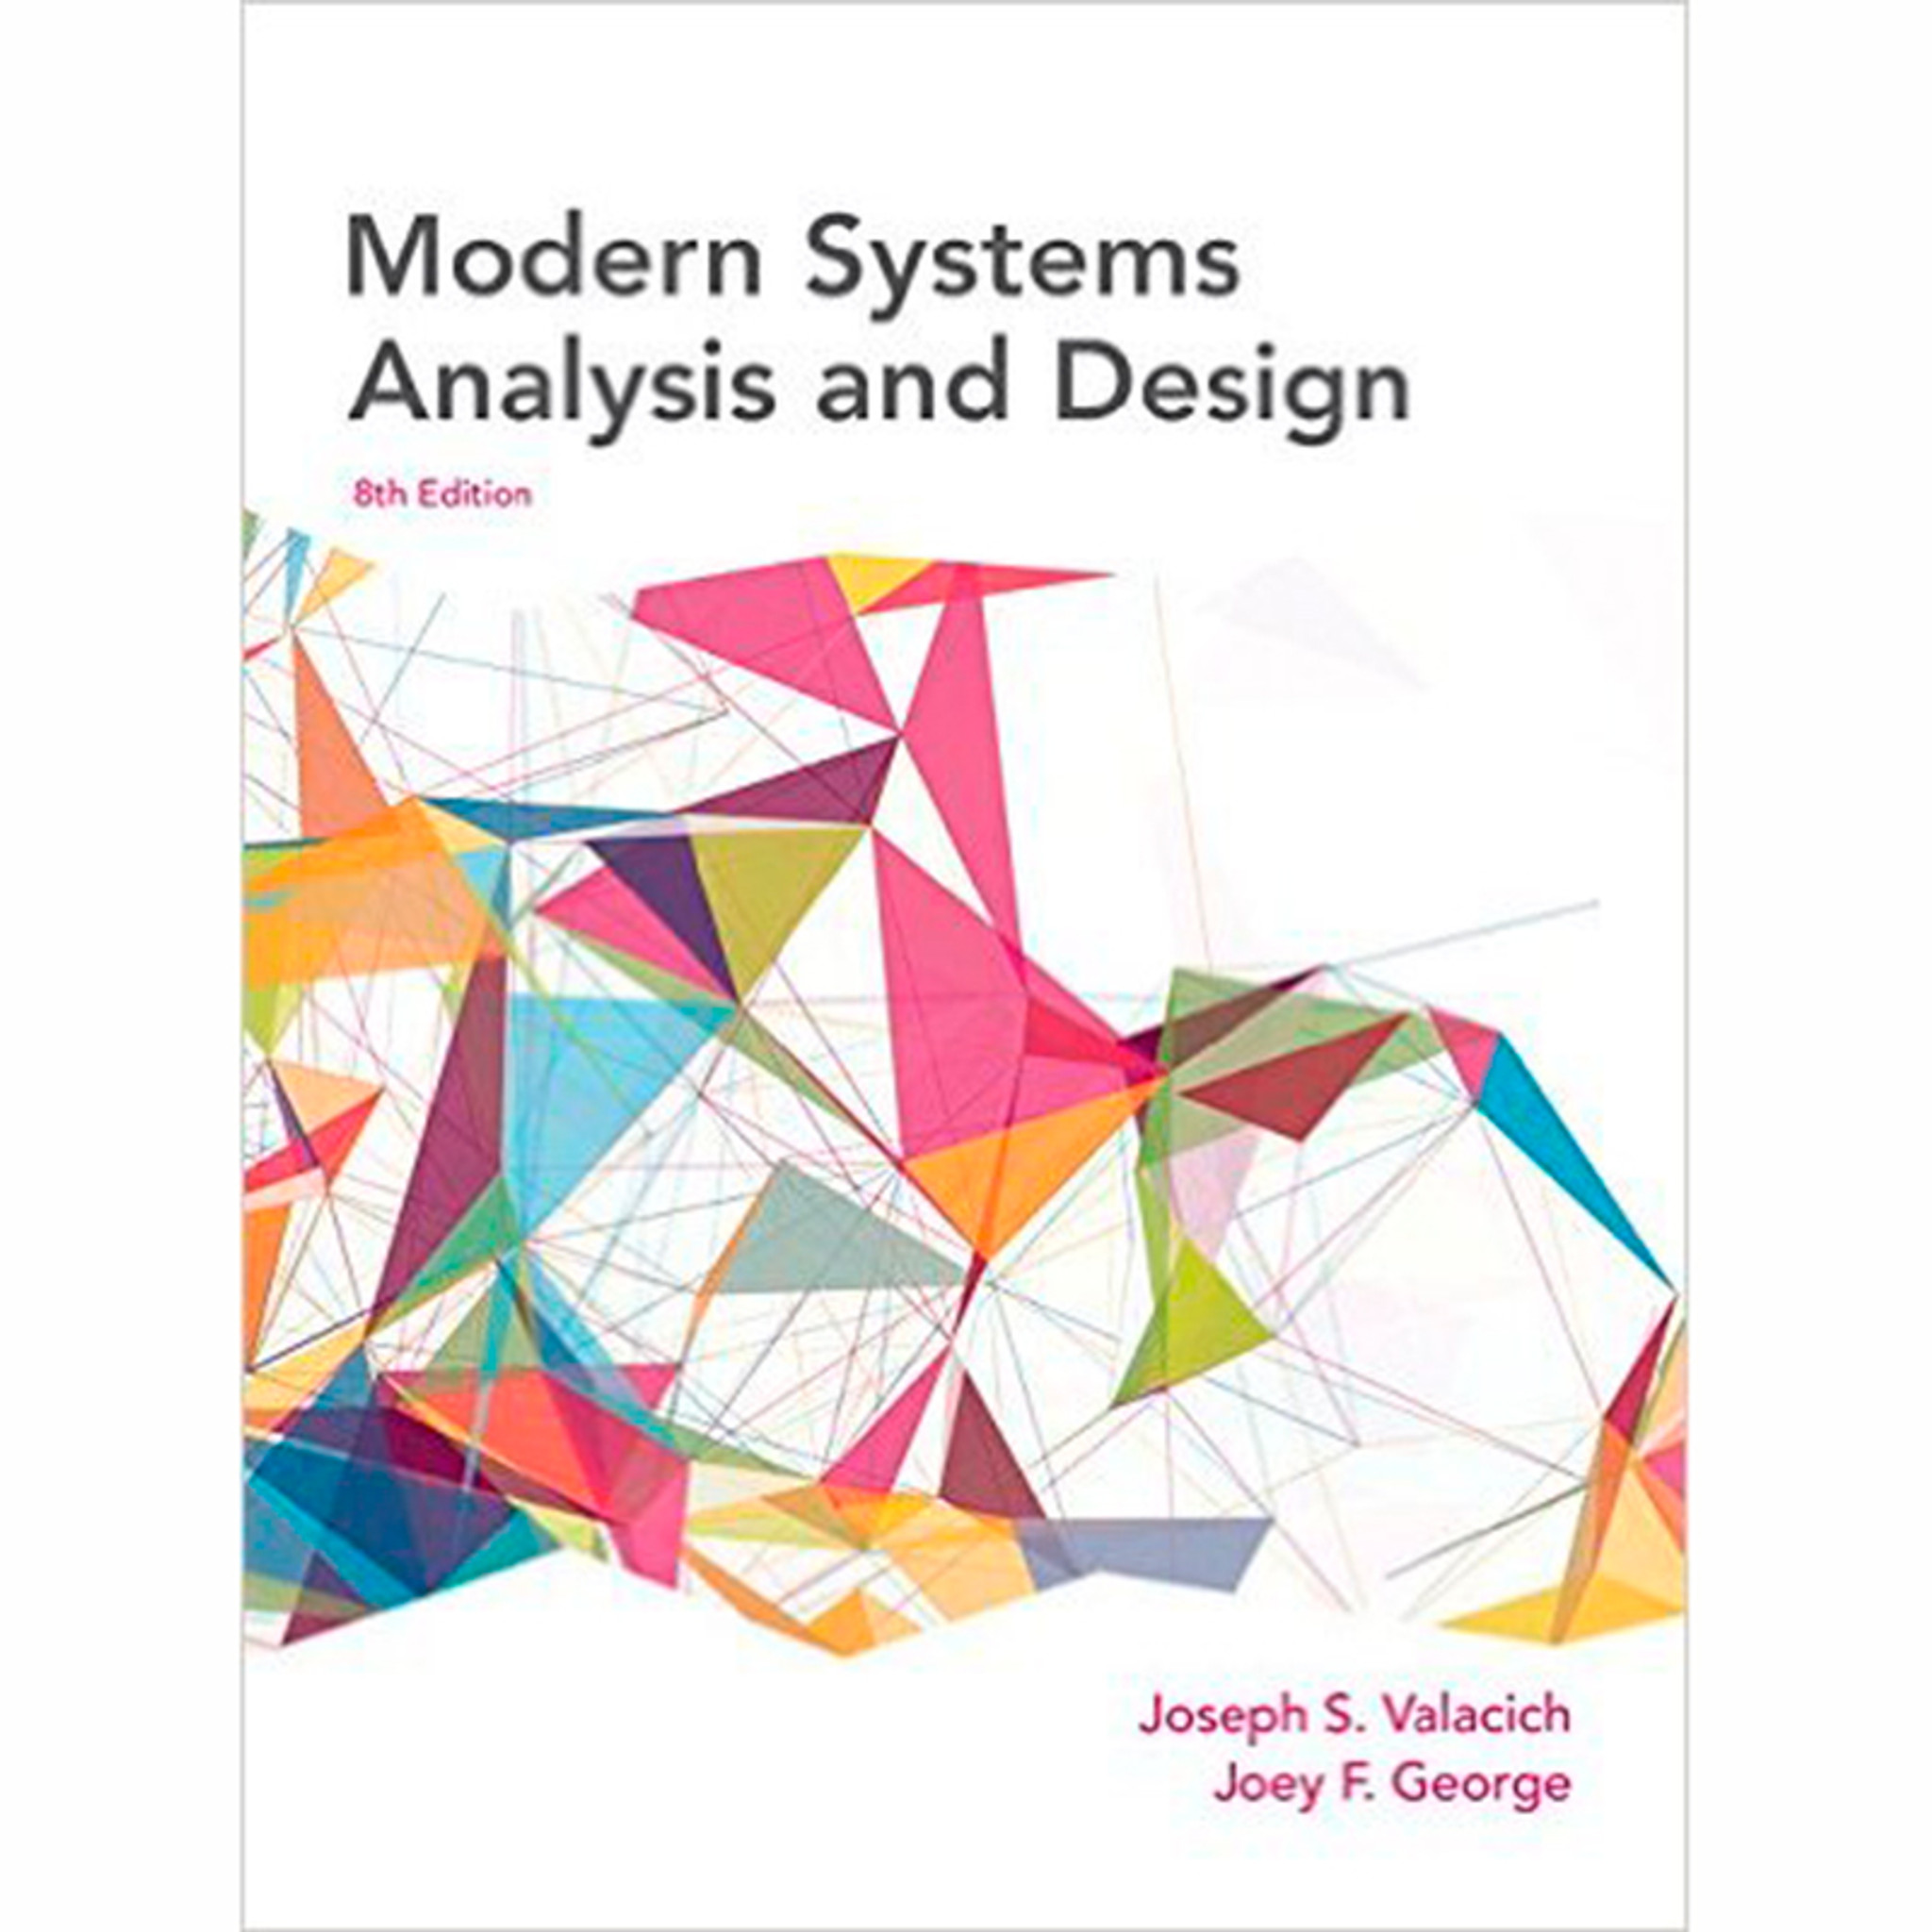 9780134204925 Modern Systems Analysis And Design 8th Edition Joseph Valacich And Joey George